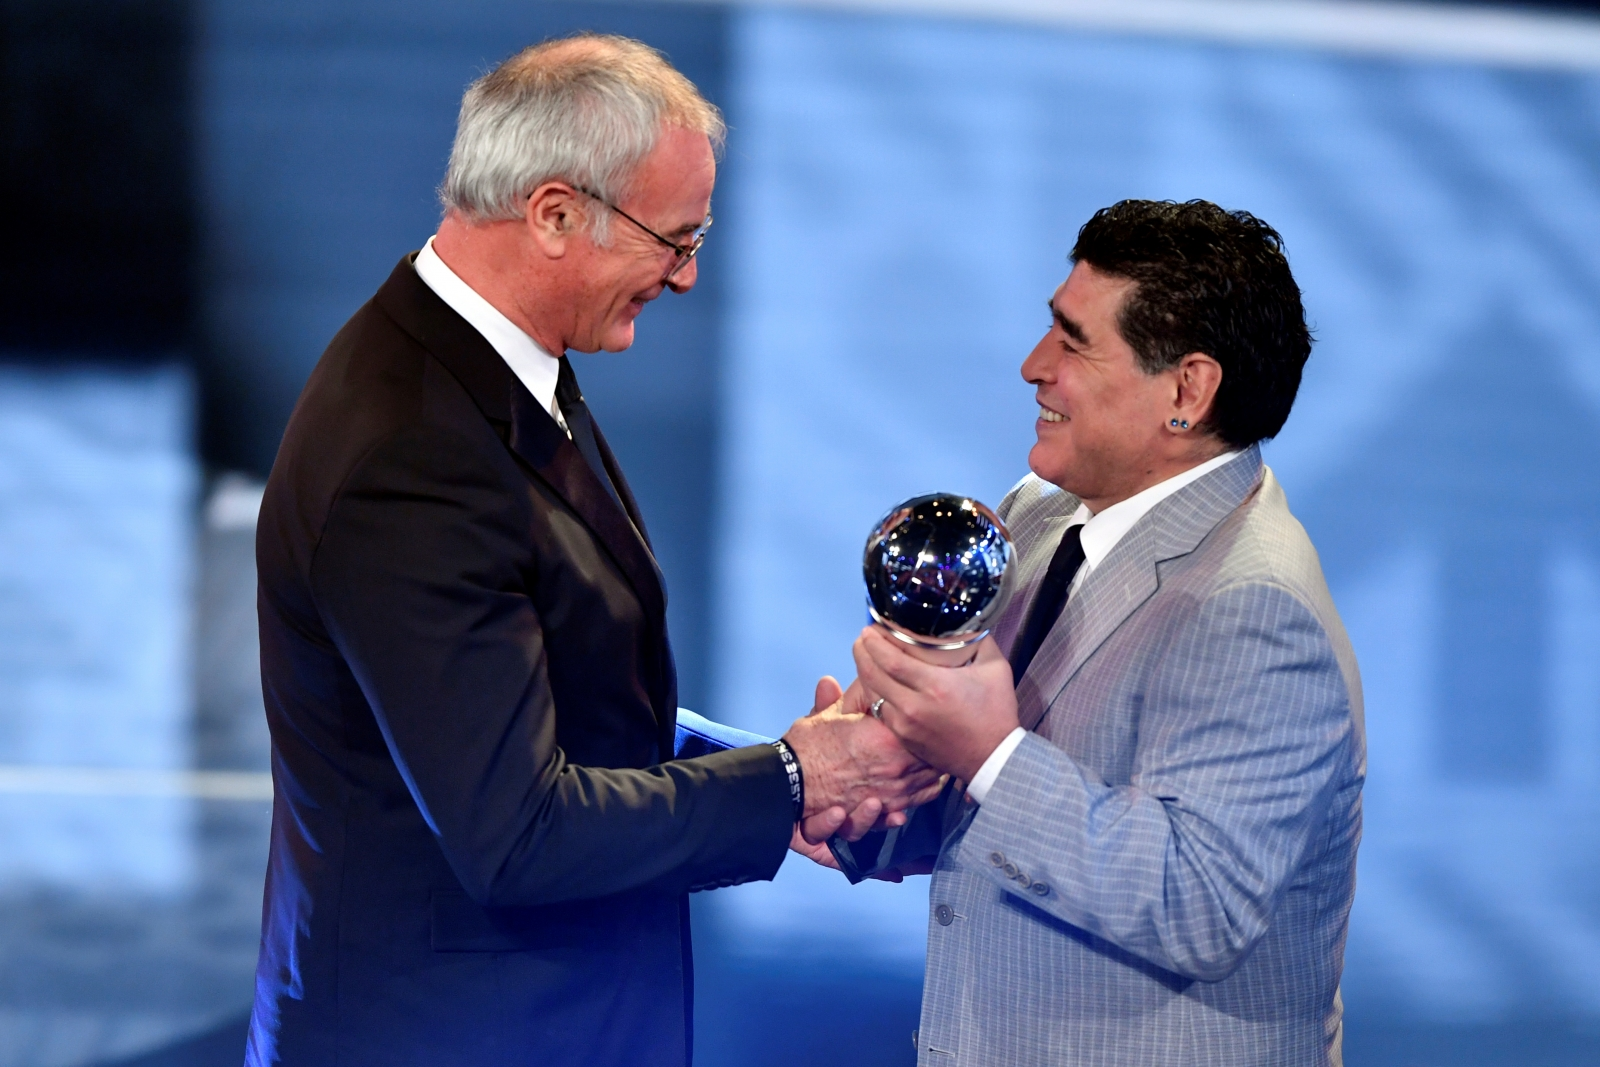 Claudio Ranieri and Diego Maradona